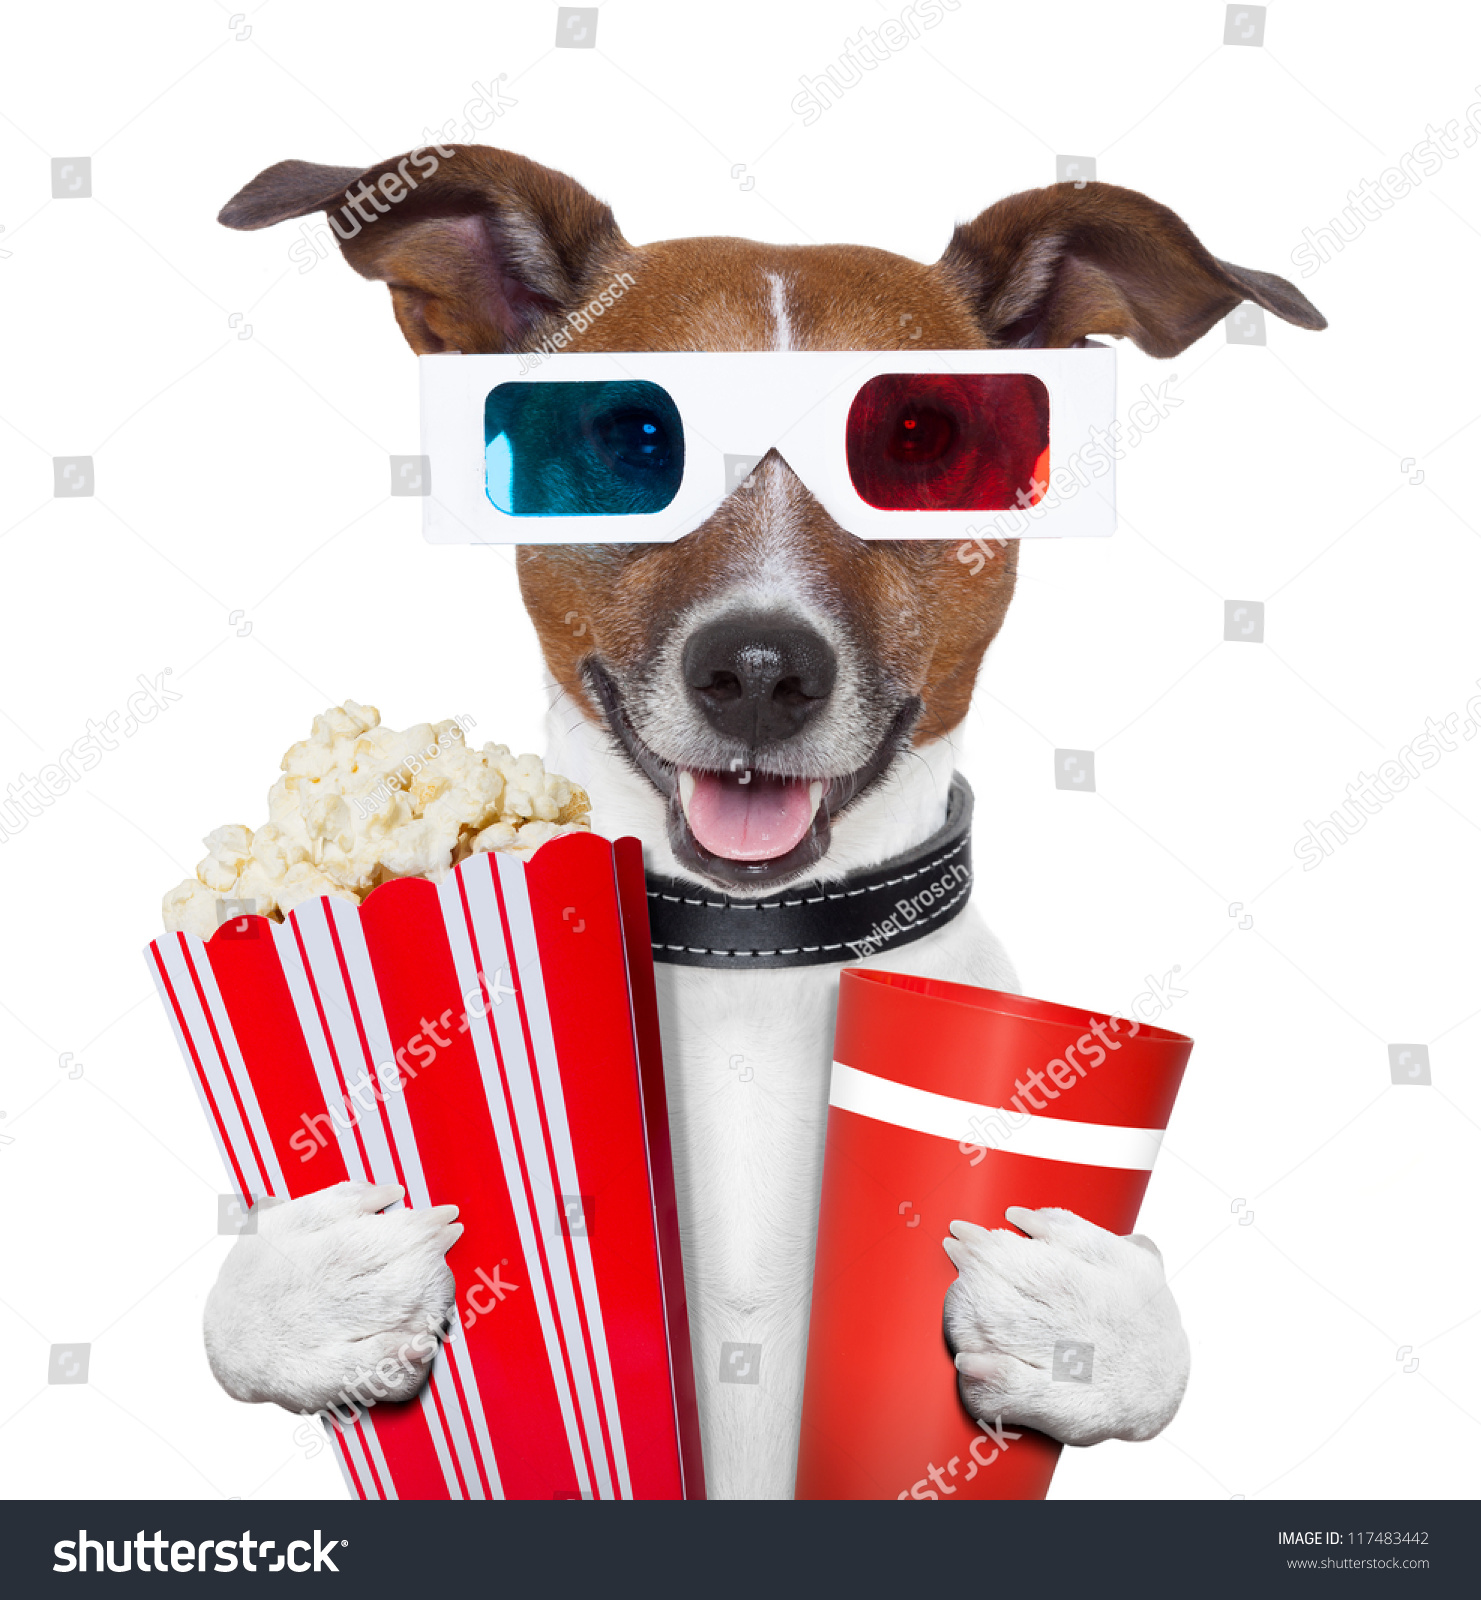 stock-photo--d-glasses-movie-popcorn-dog-watching-a-film-117483442.jpg